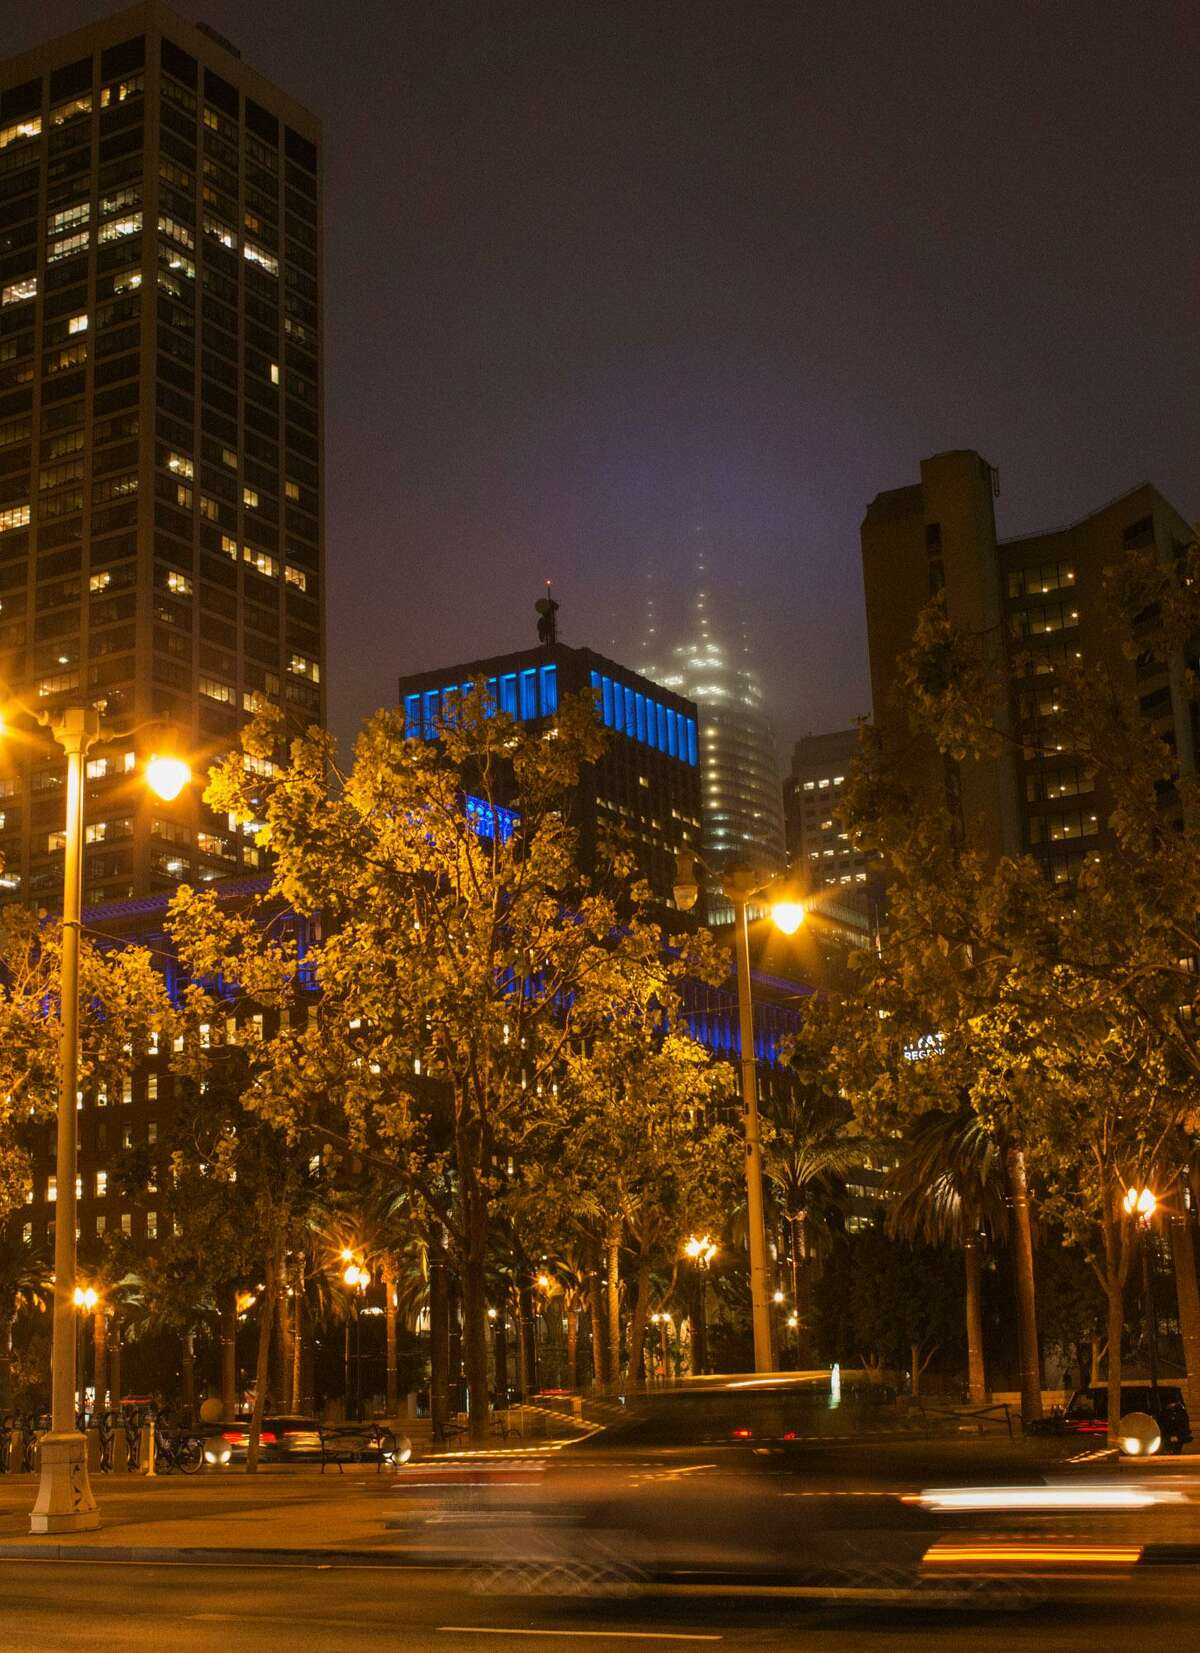 Fog enshrouds the Salesforce Tower on Tuesday, obscuring the new light installment.